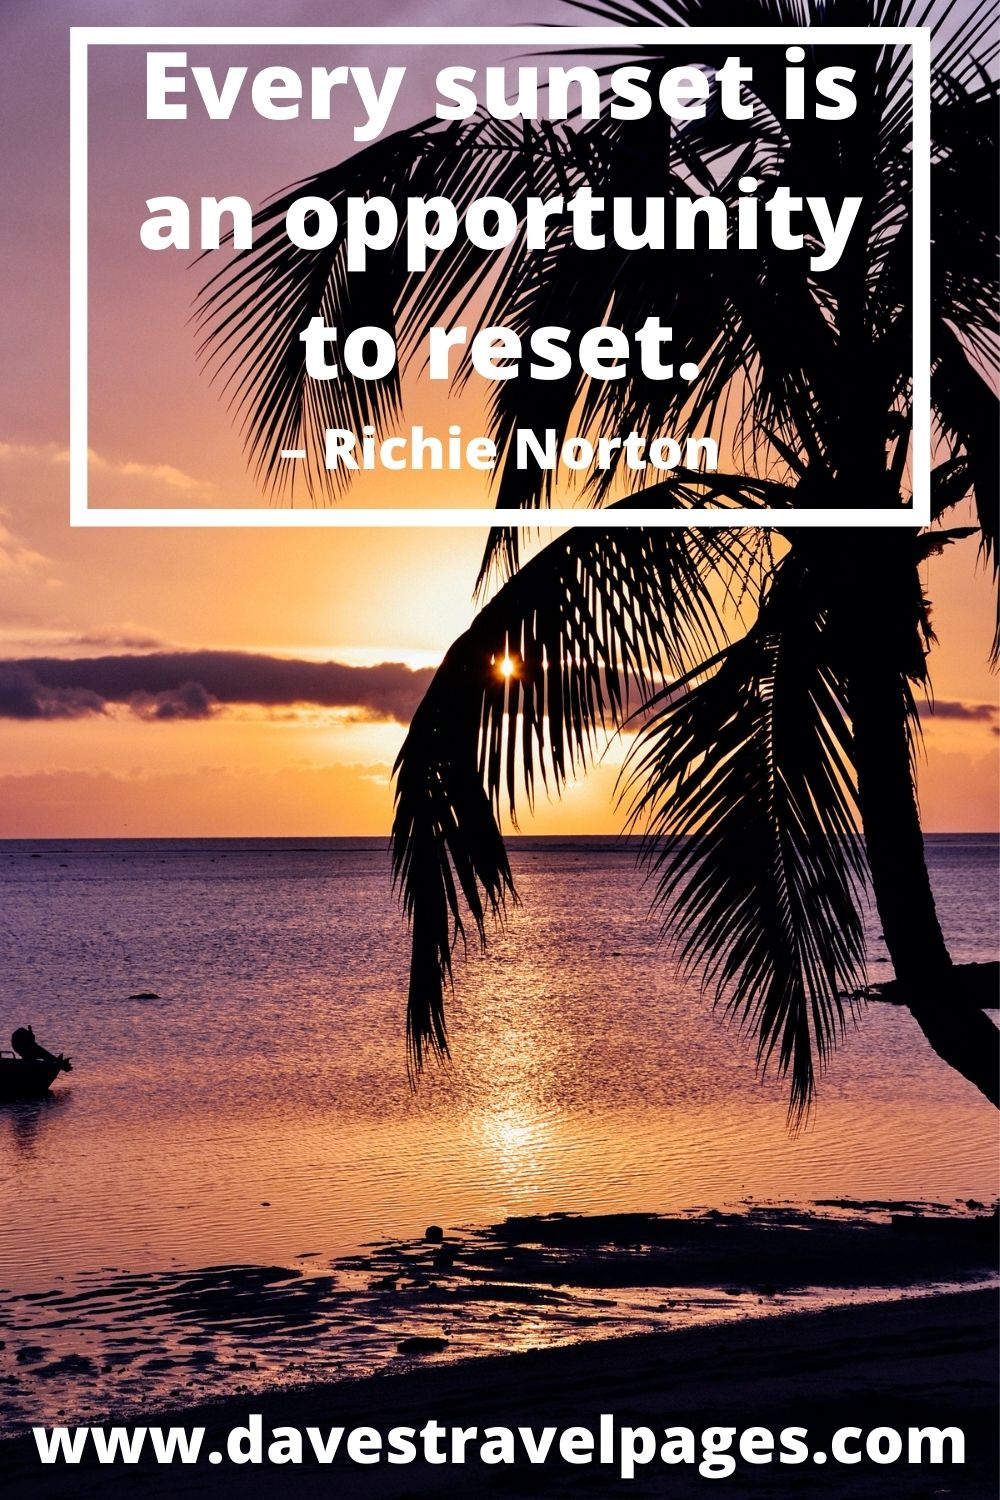 Every sunset is an opportunity to reset. – Richie Norton